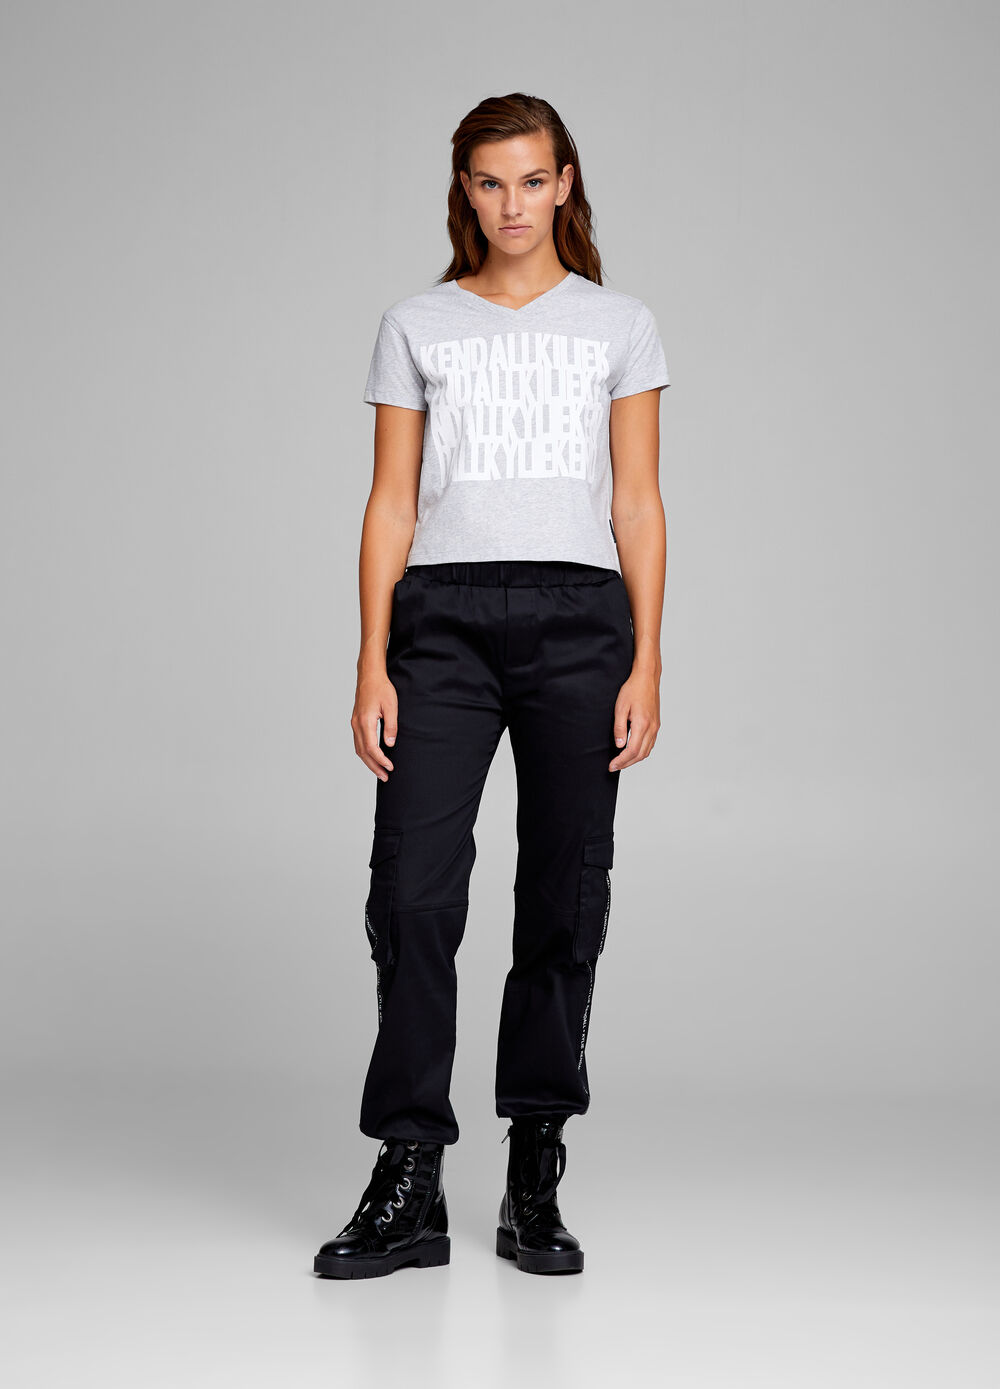 K+K for OVS melange crop T-shirt